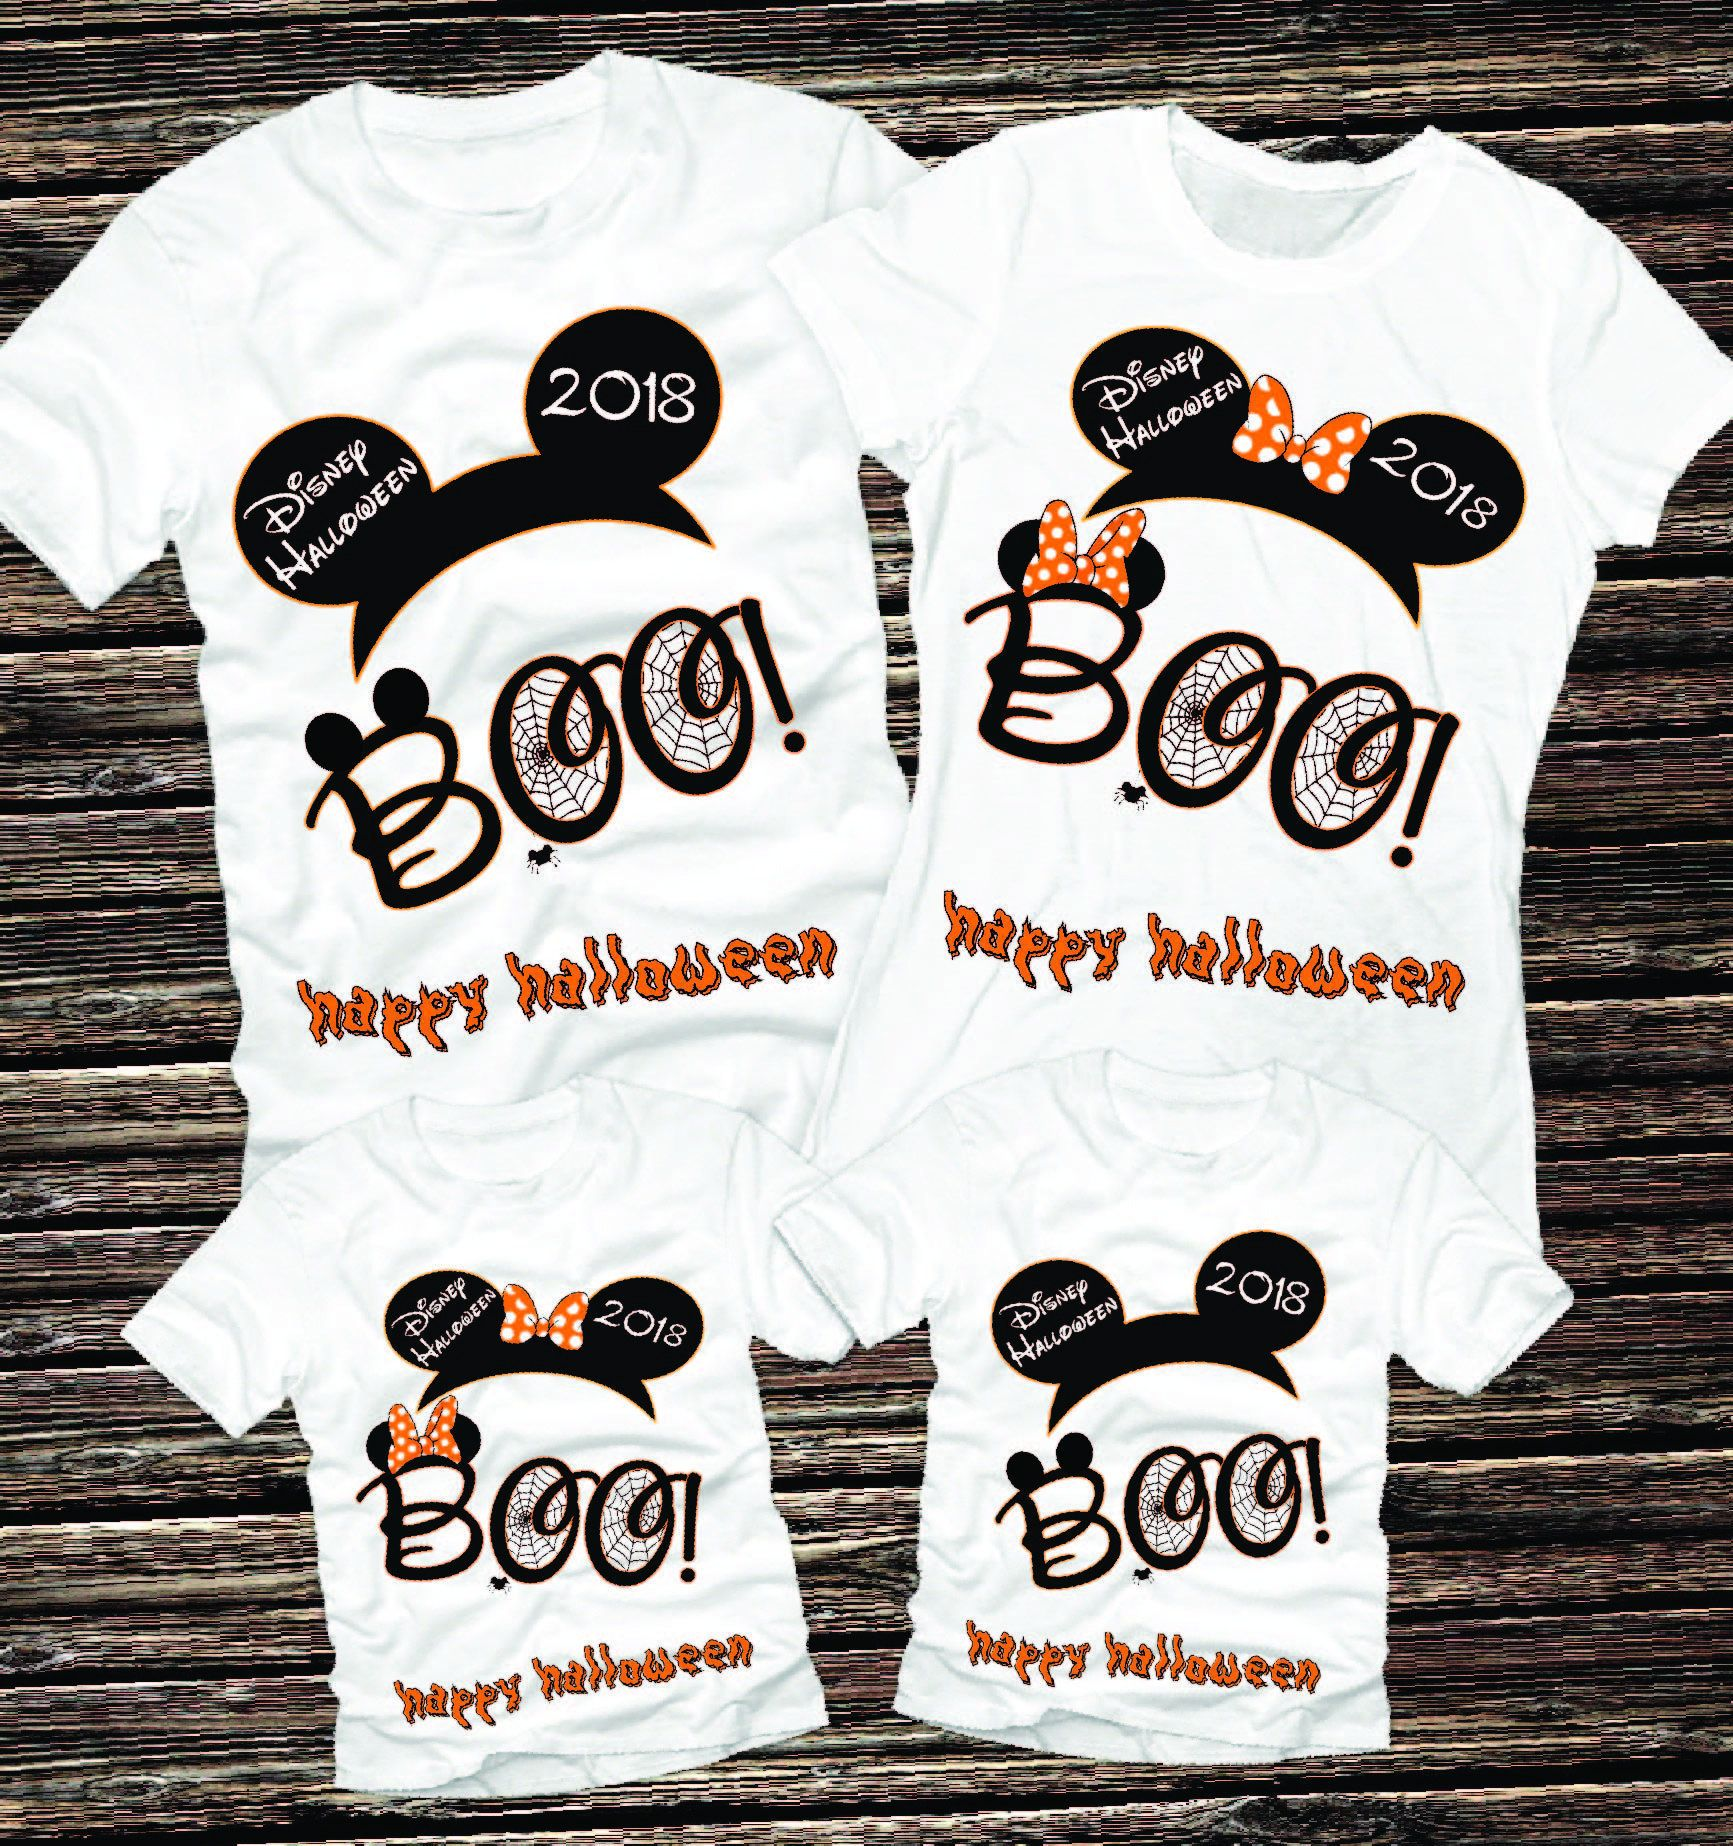 Disney Halloween Shirts Etsy.Halloween Family Shirts Disney Family Shirts For Halloween